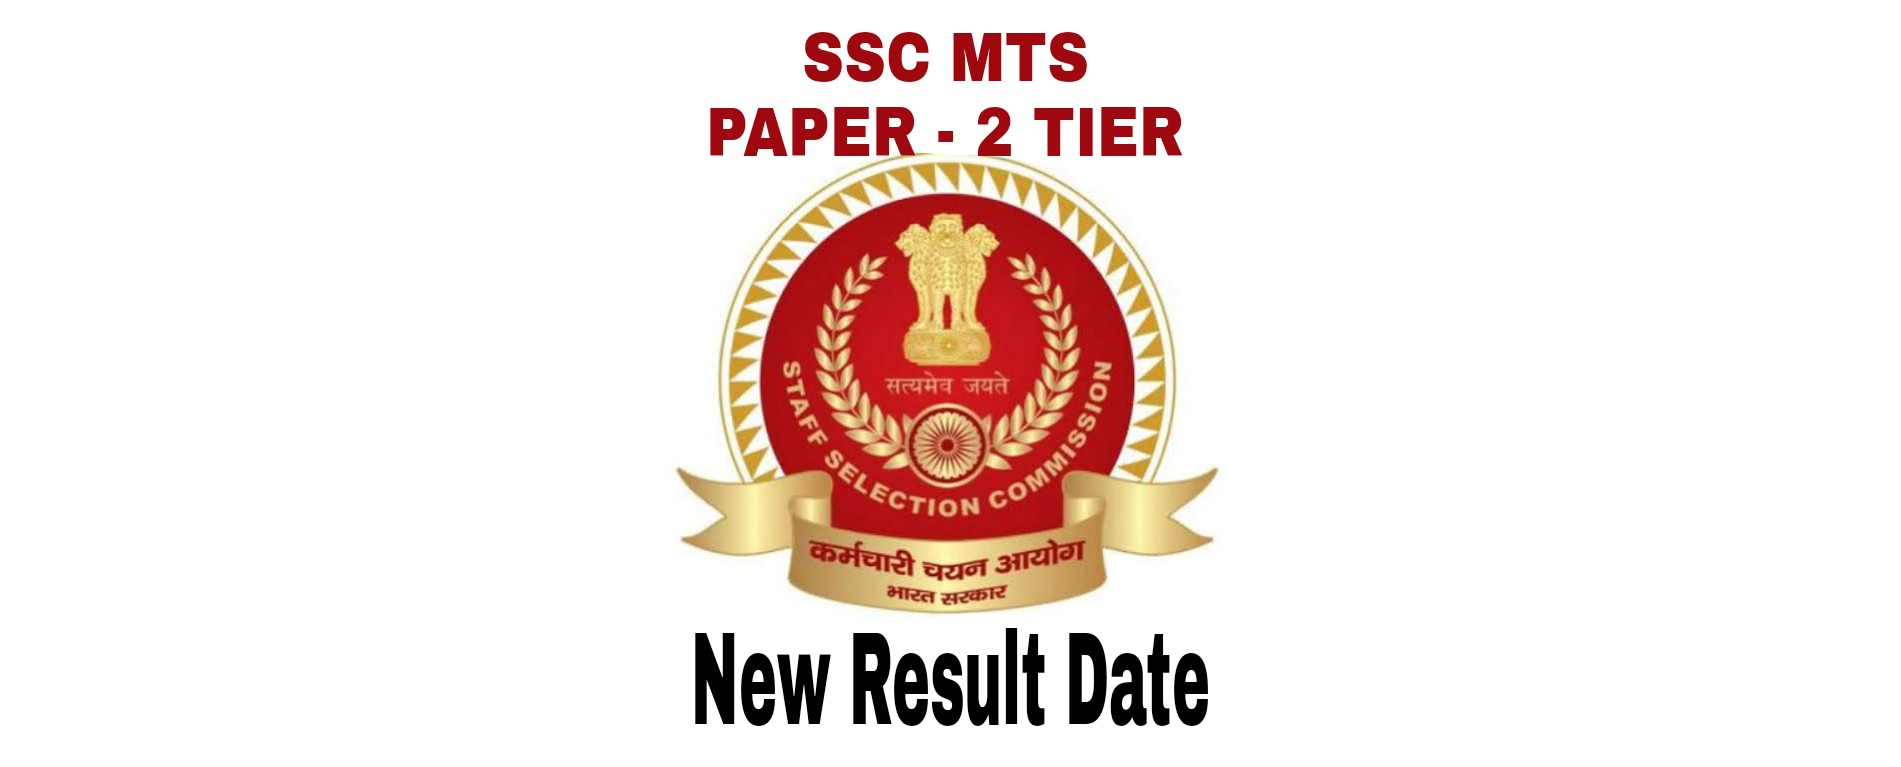 SSC MTS PAPER 2 New Result Date as Postponed due to Covid 19